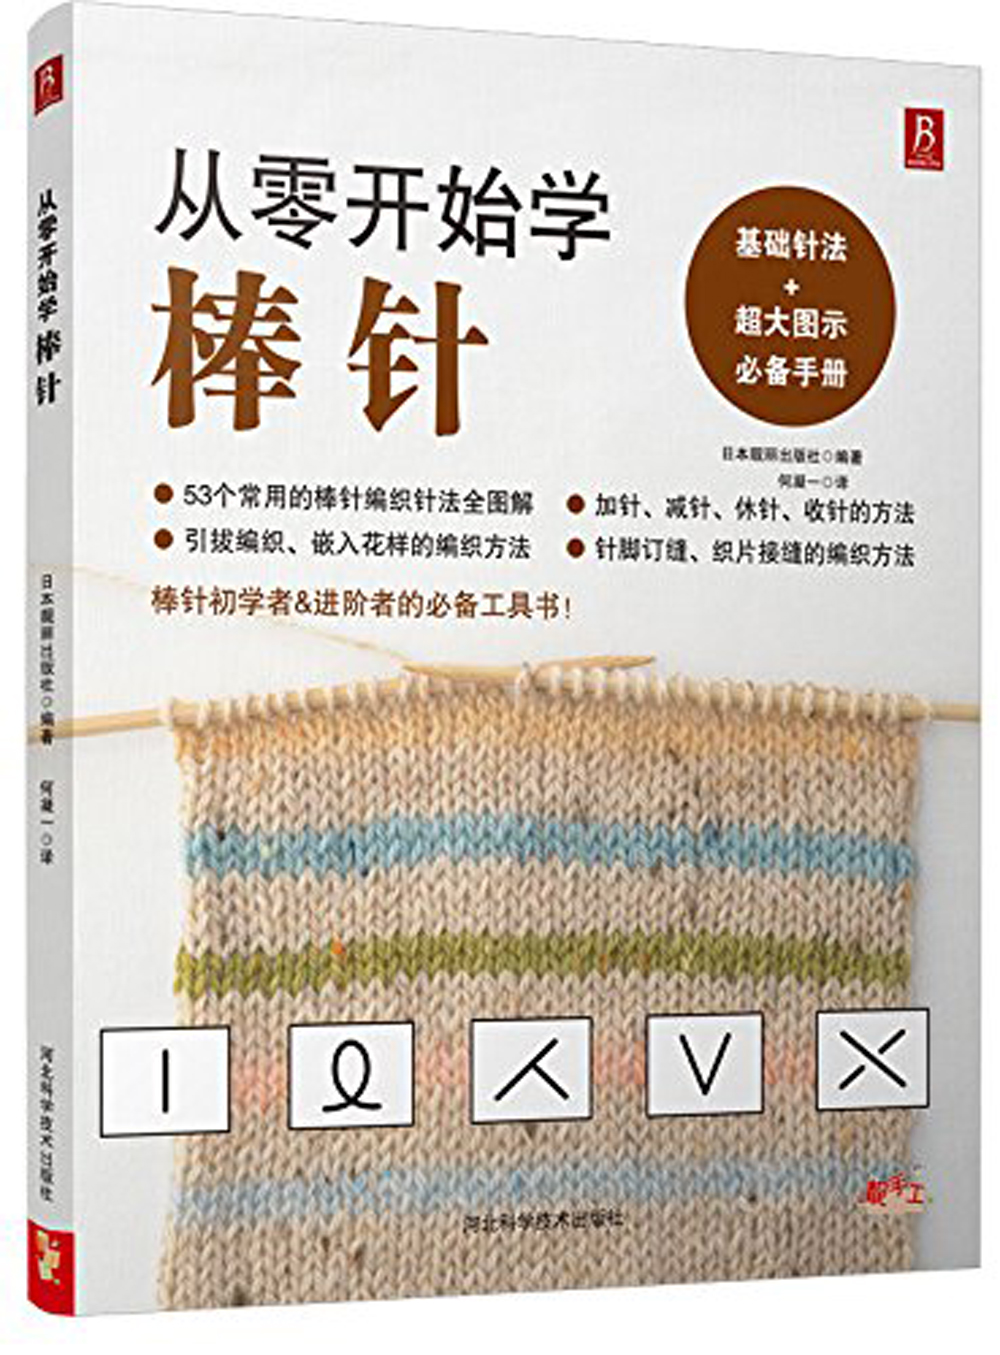 learn knitting needle book from beginning Chinese craft handmade book textbook